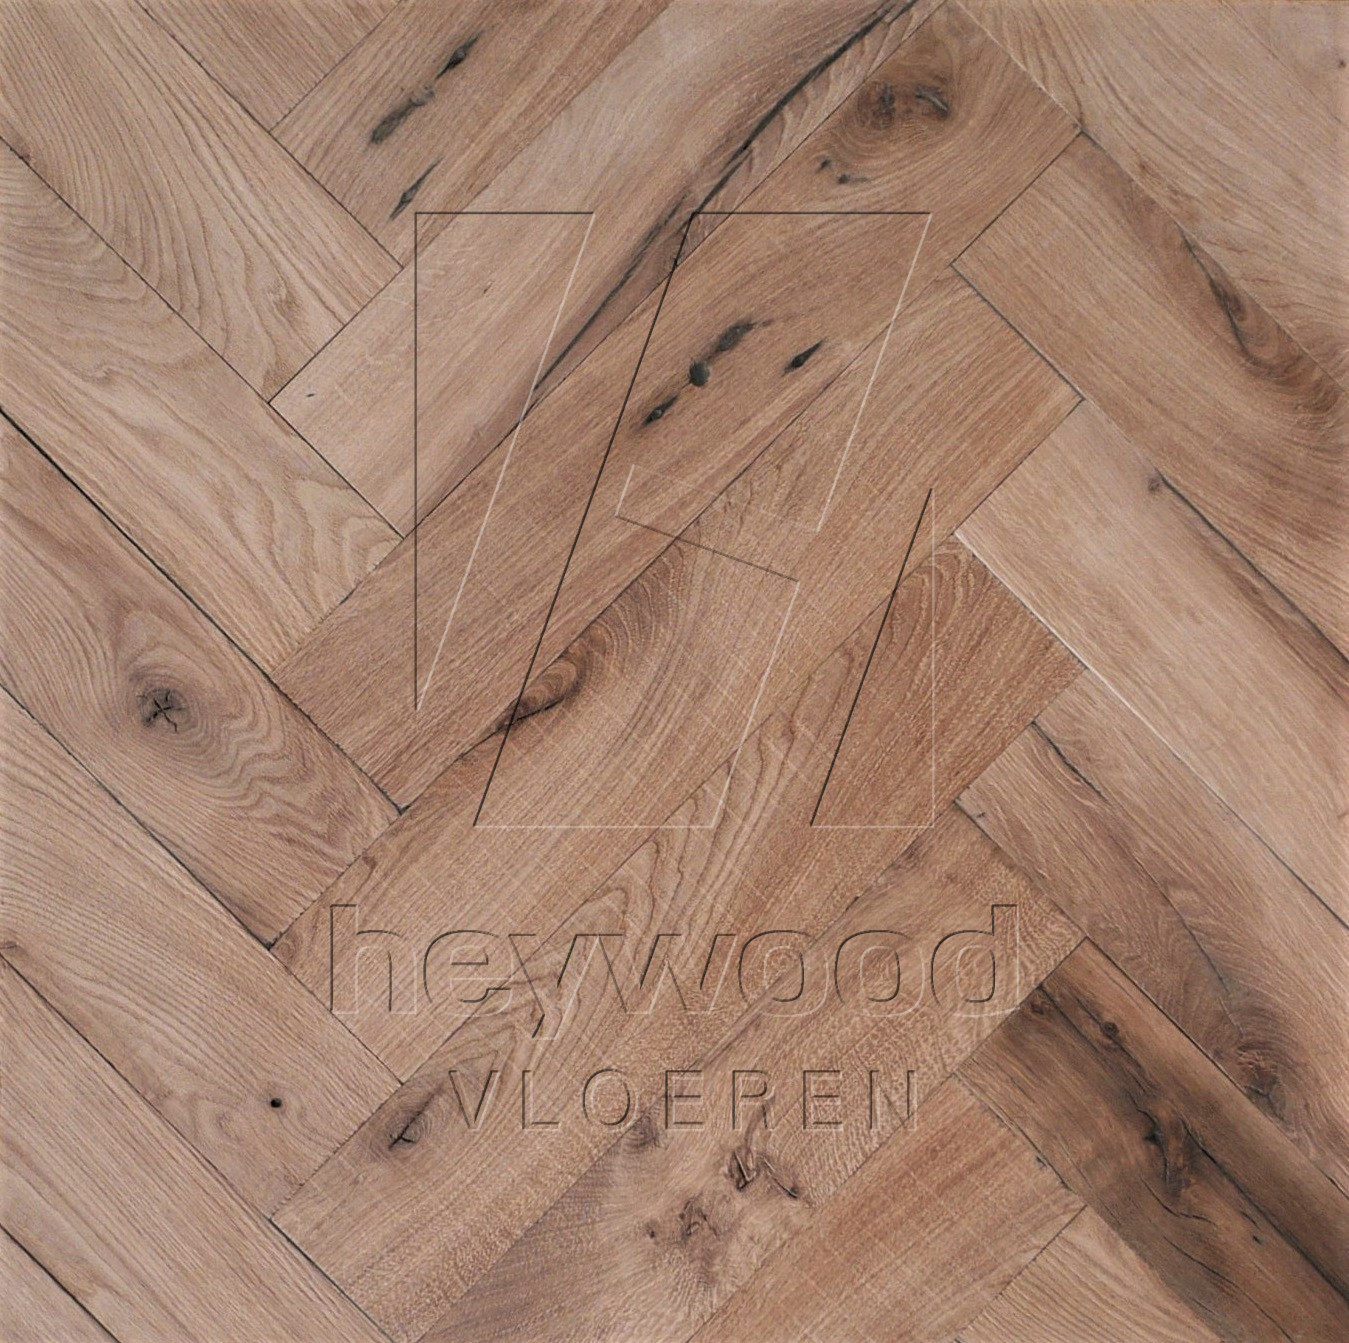 Reclaimed Herringbone 'Provence' (unoiled) in Pattern & Panels (Outsides / Insides) of Old Reclaimed Wood